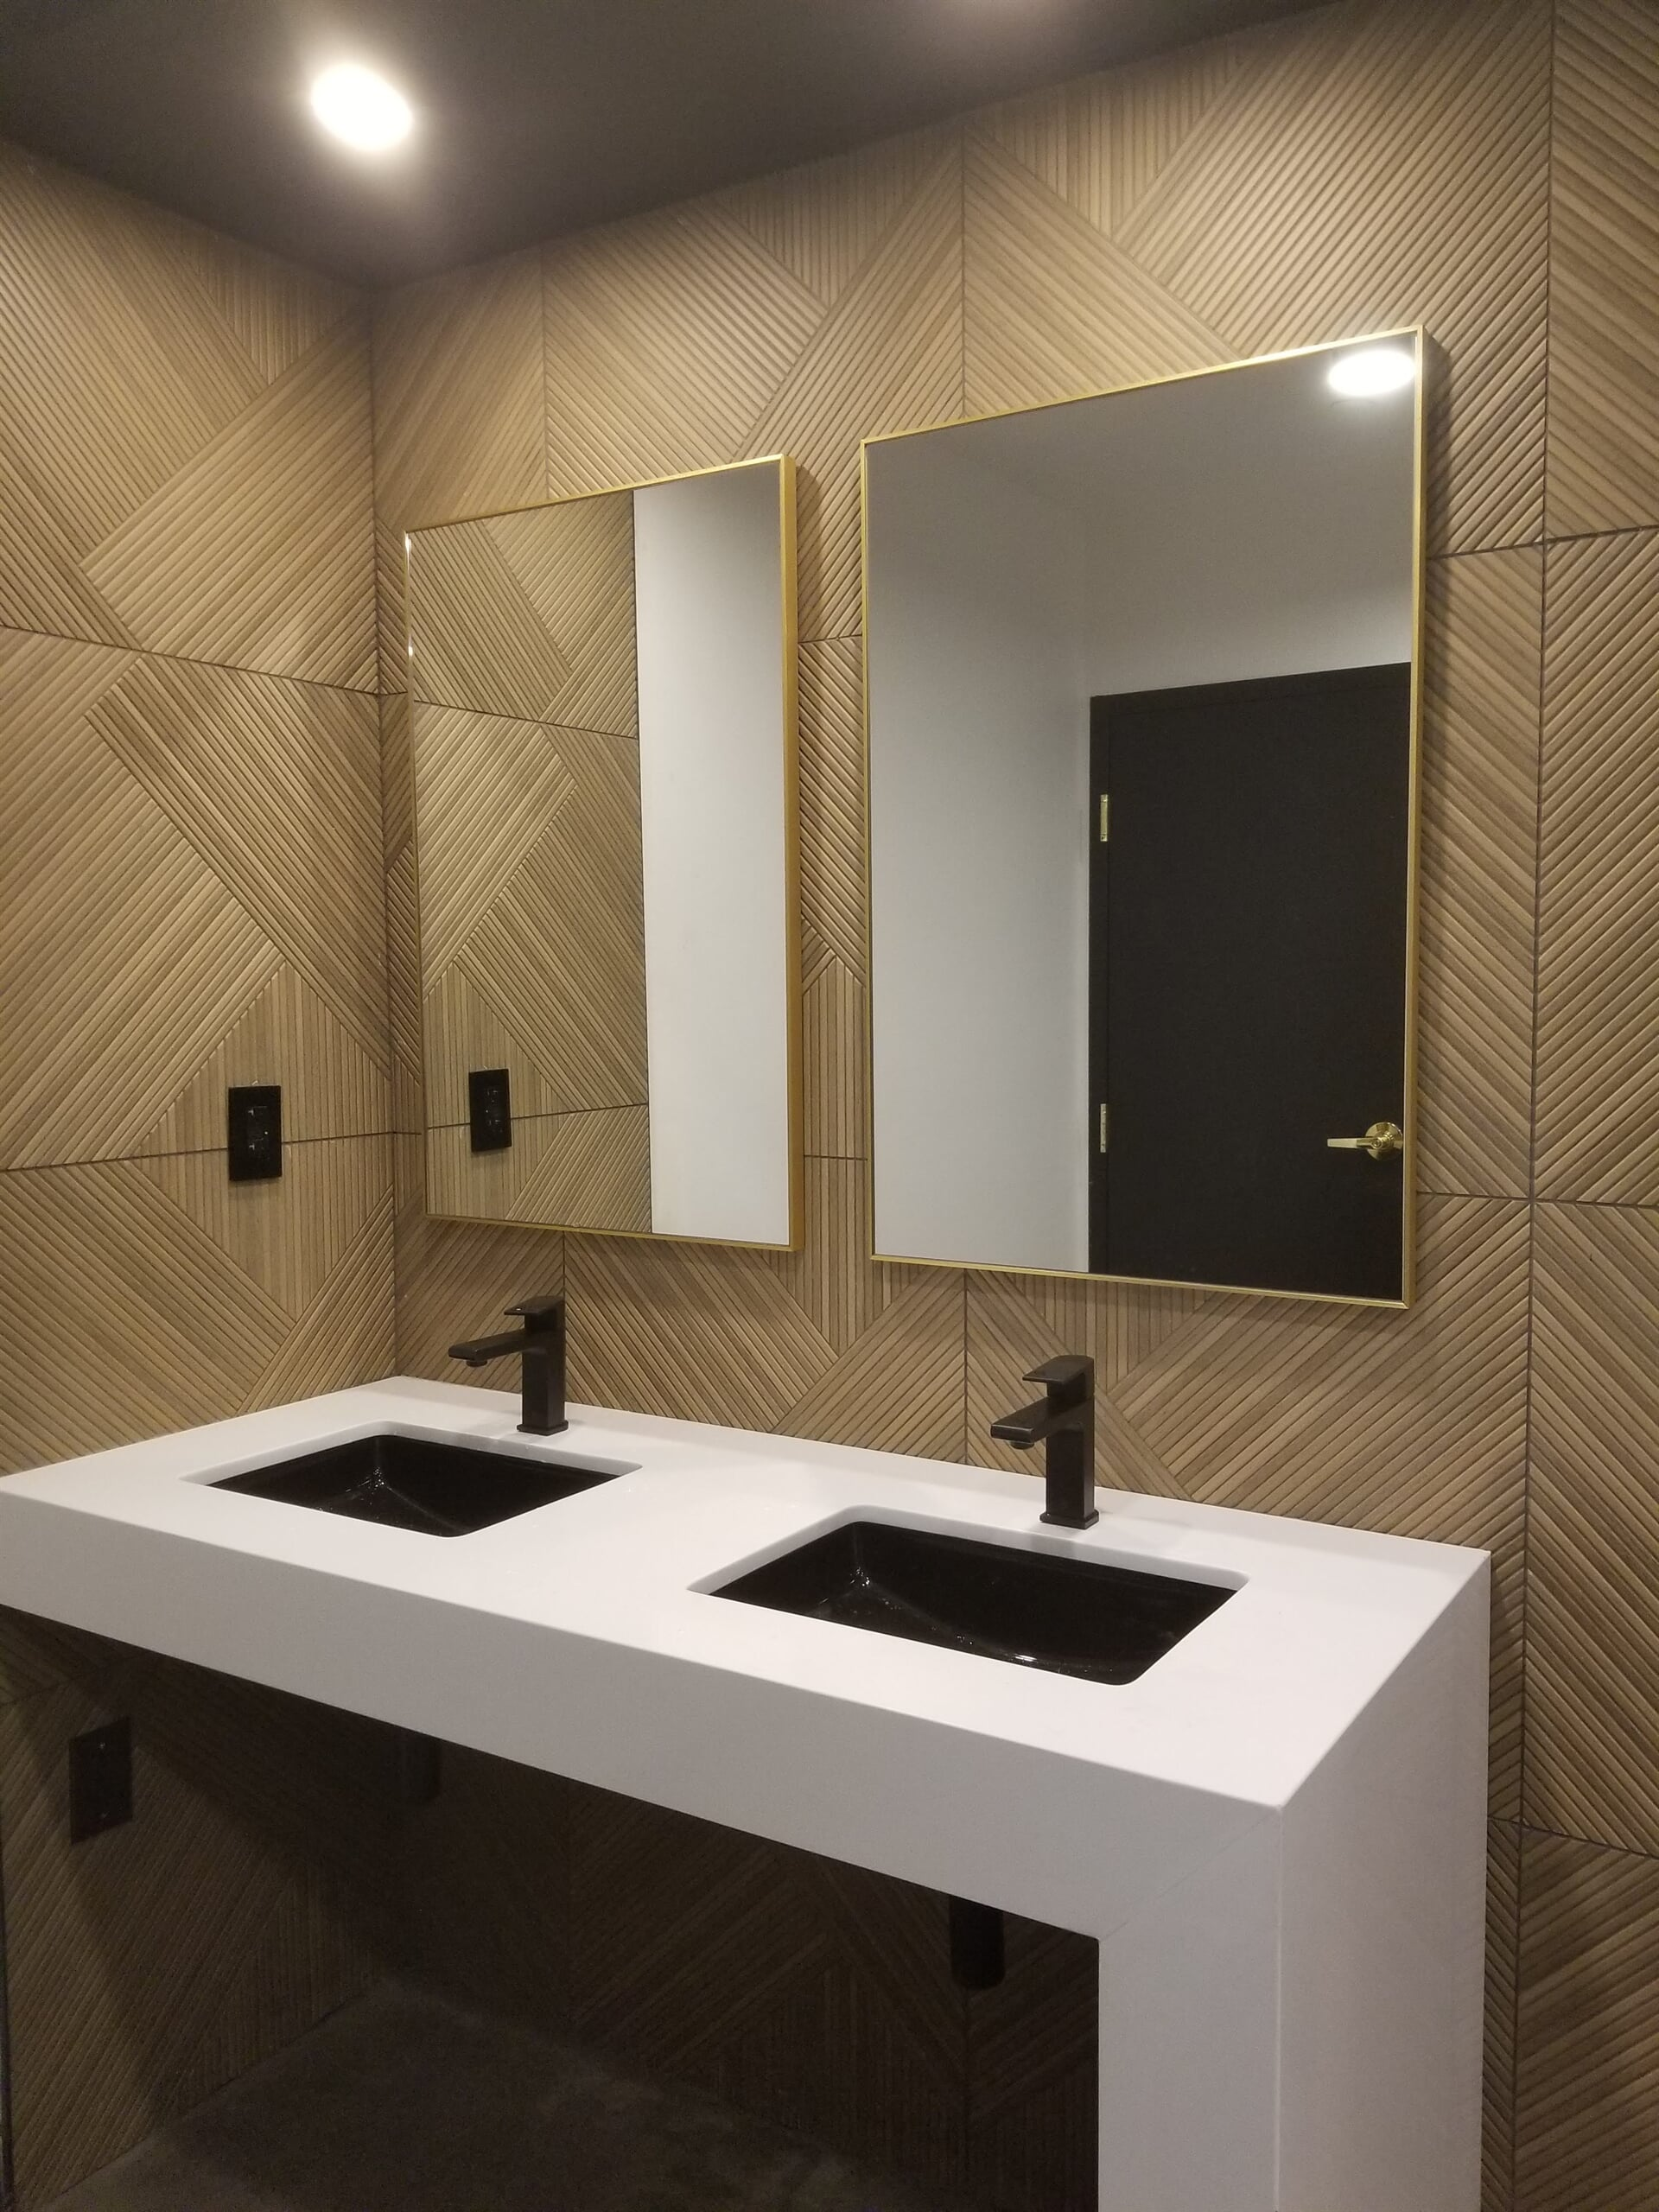 Commercial bathroom remodel in Norris Square, PA from Philadelphia Flooring Solutions